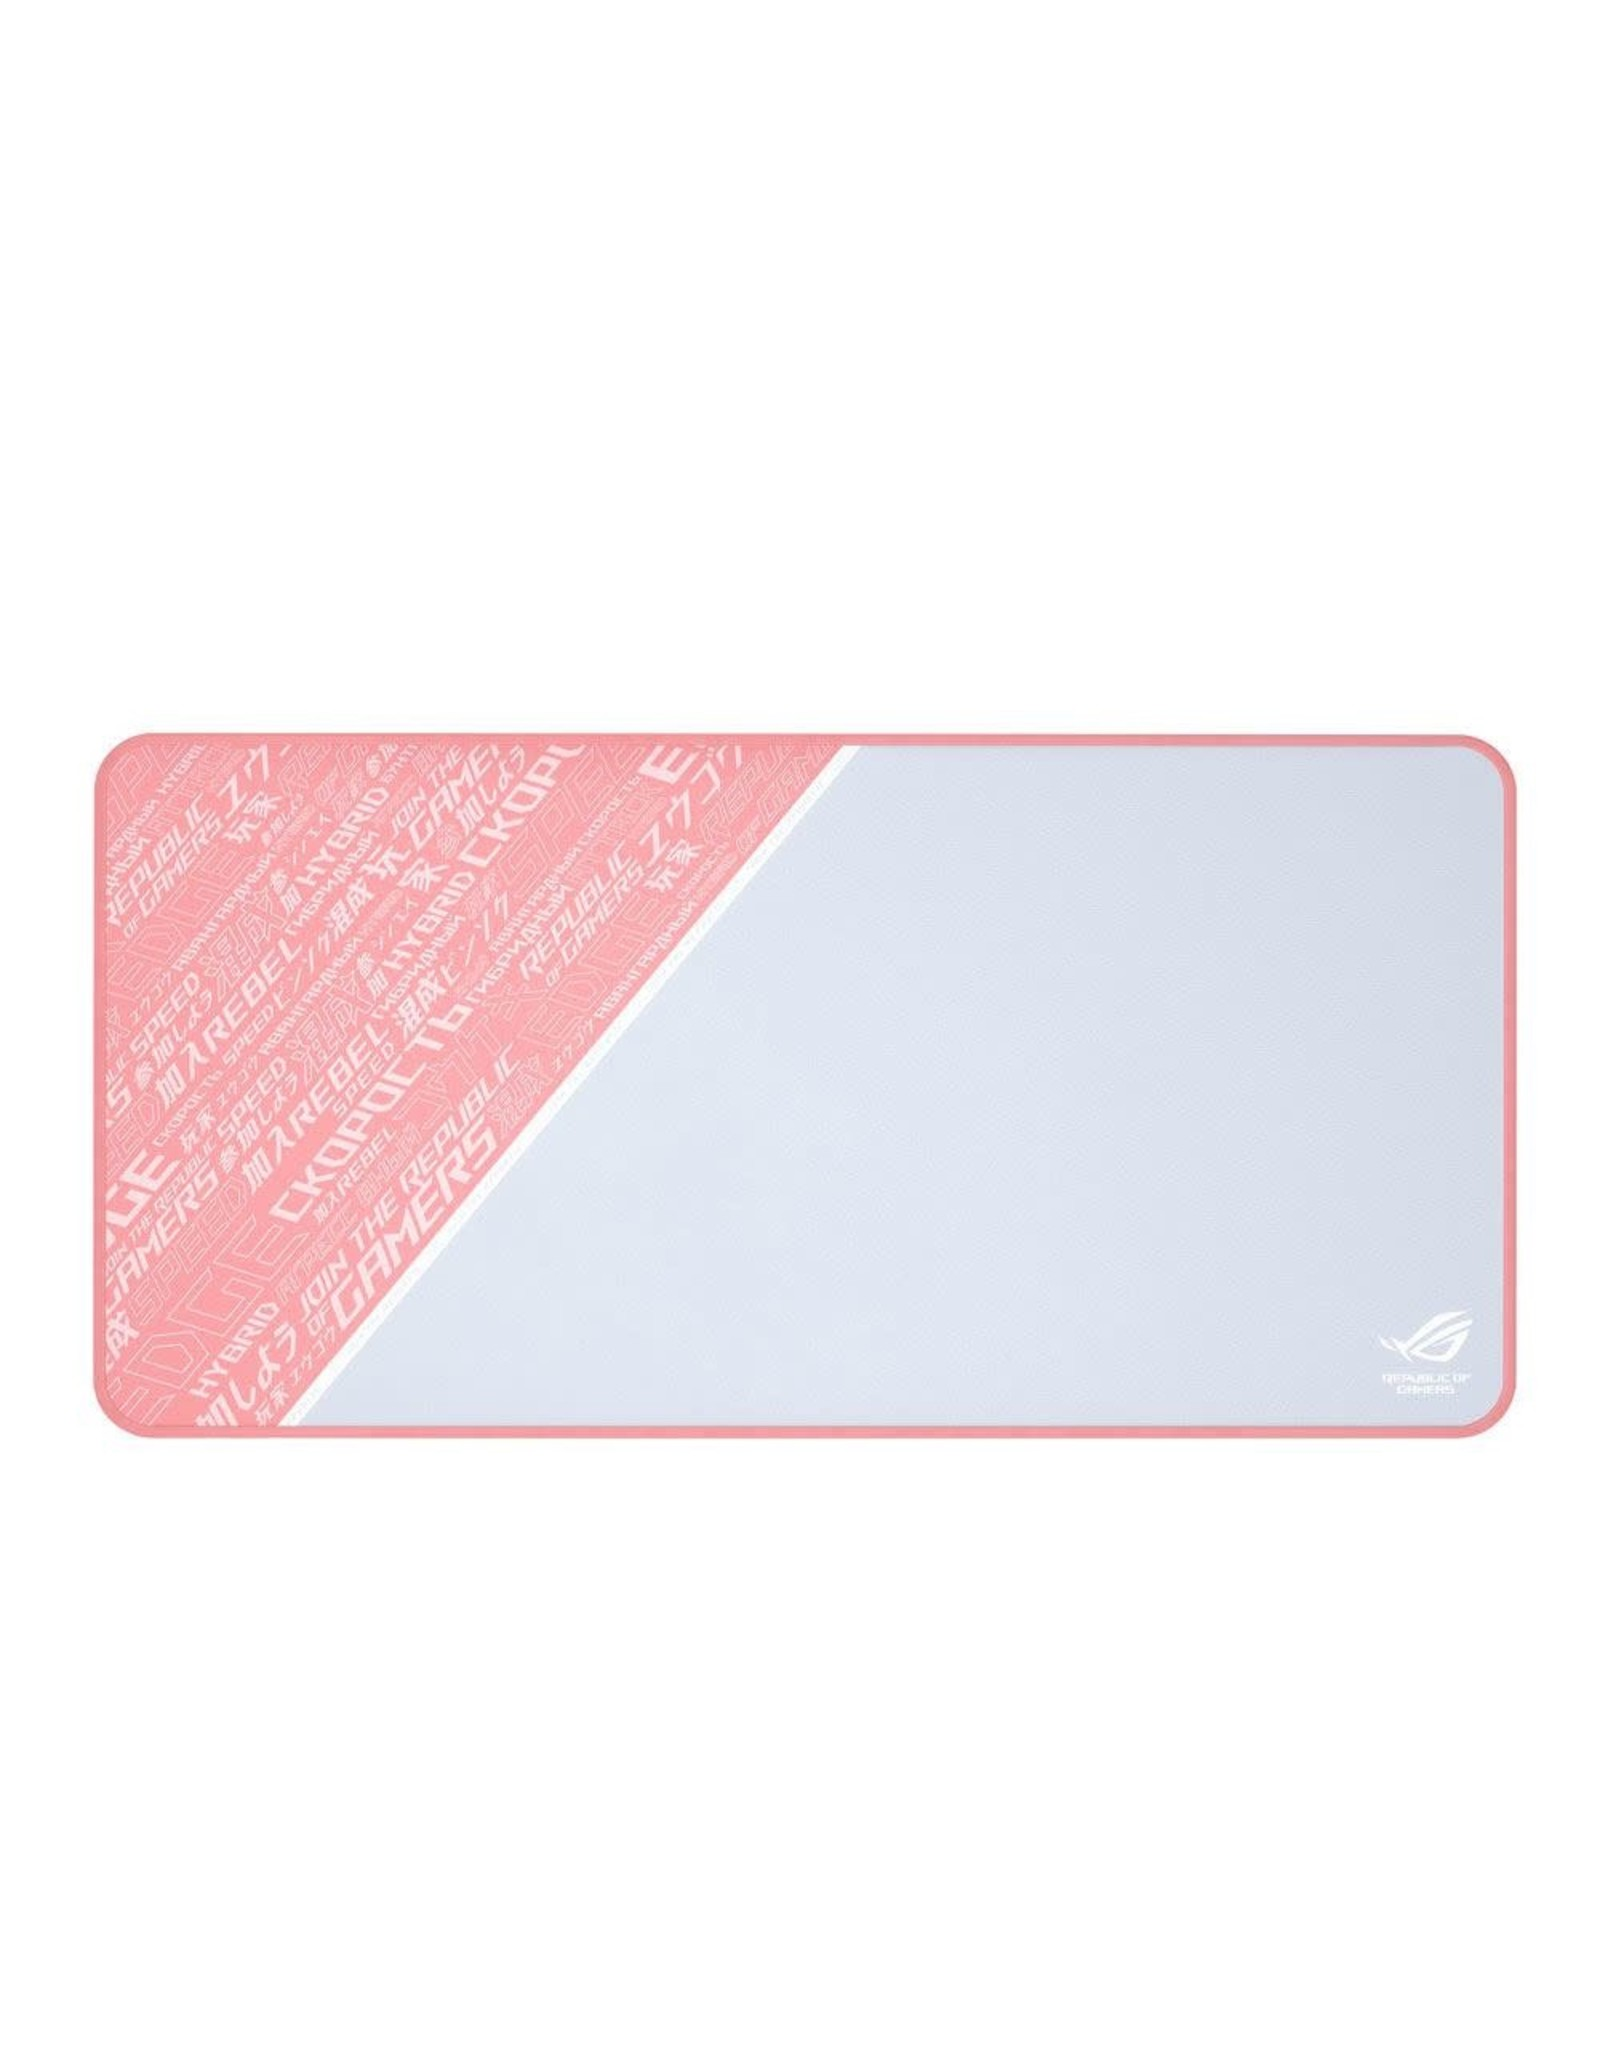 ASUS ASUS ROG Sheath Pink Limited Edition Extra-Large Gaming Mouse Pad